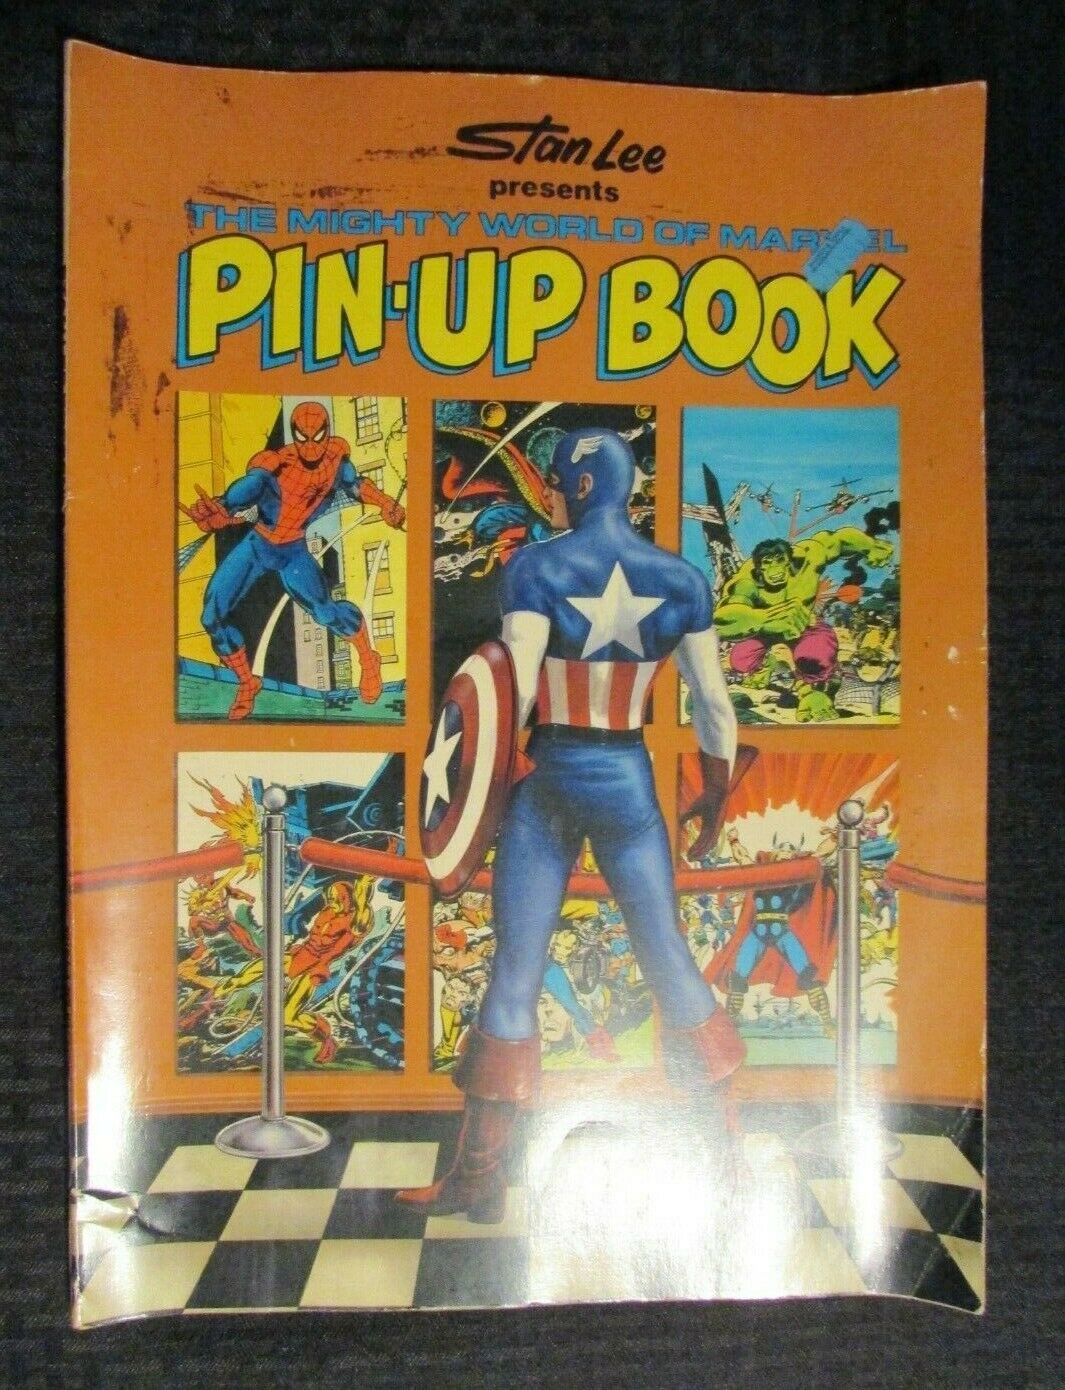 1978 Mighty World of Marvel PIN-UP BOOK Stan Lee VG- 3.5 Fireside Complete